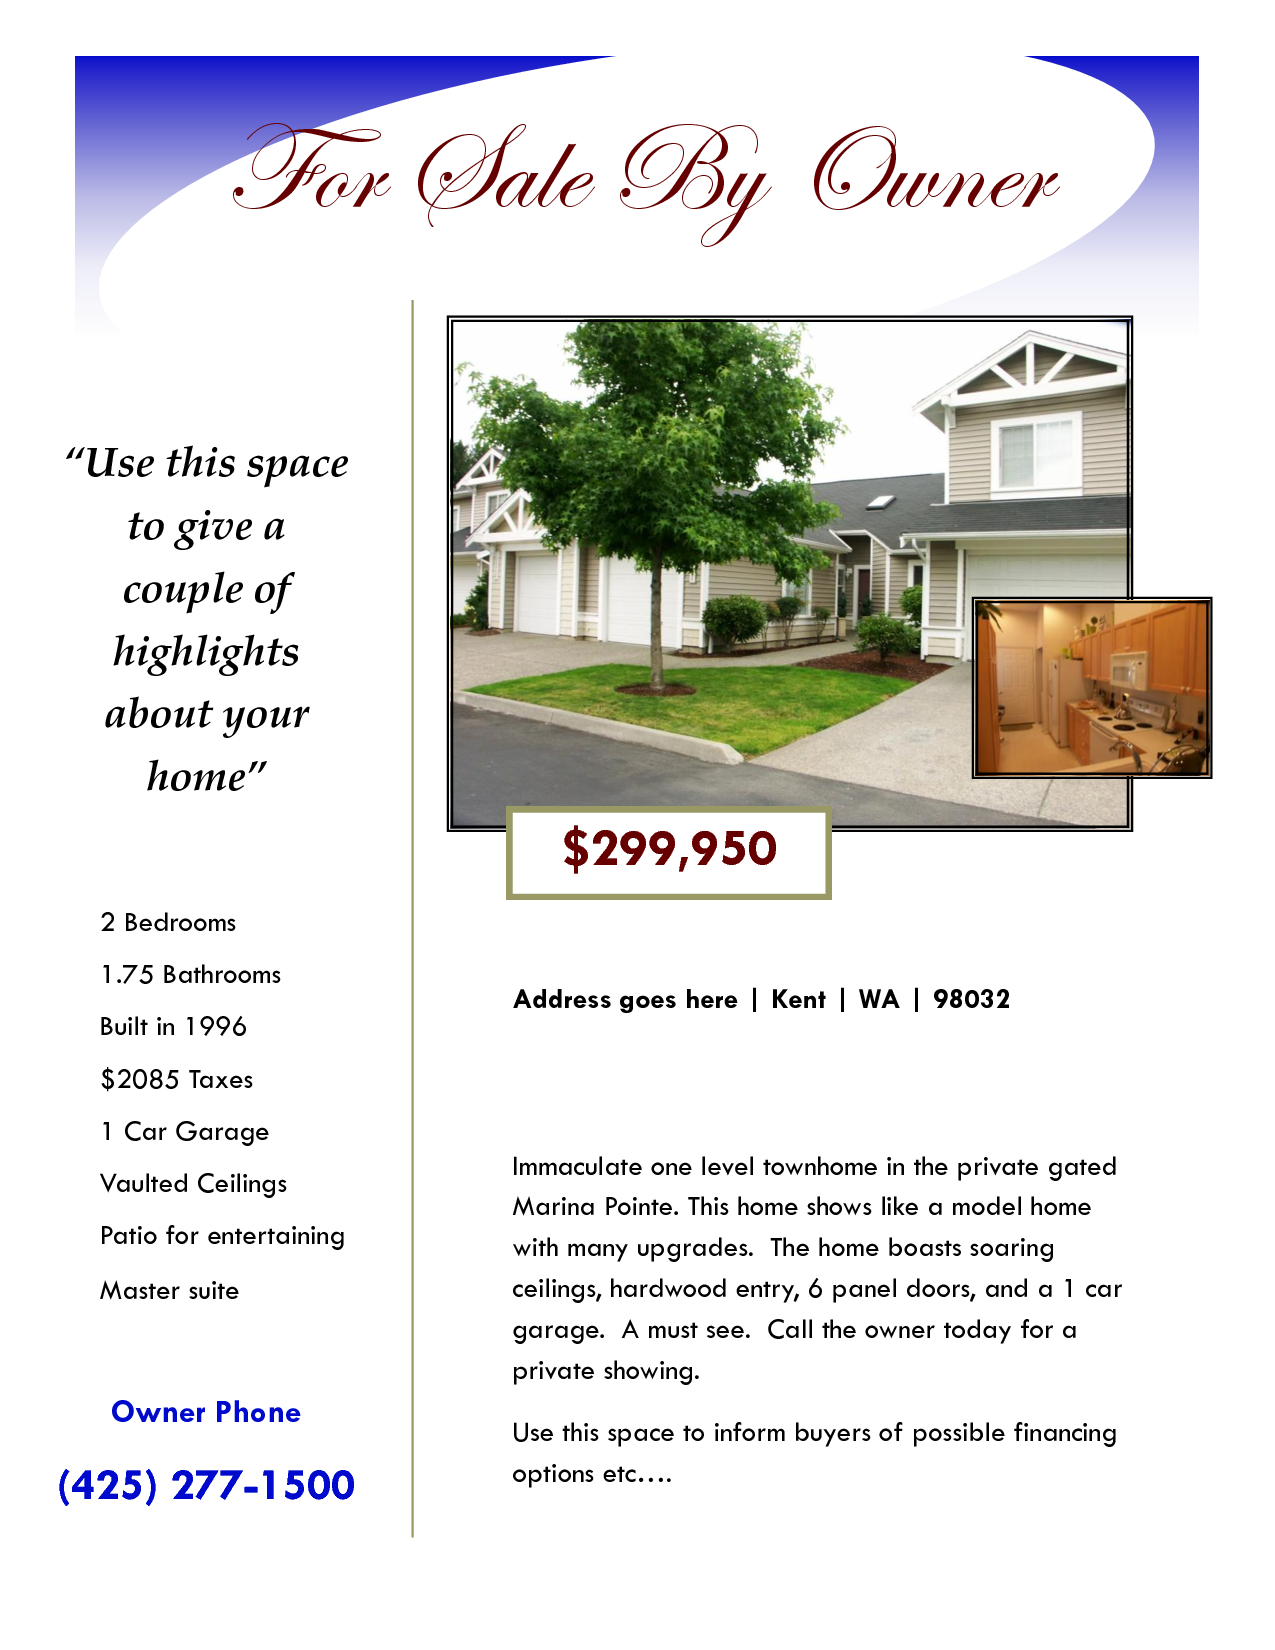 House For Sale Flyer   Google Search  Home Sale Flyer Template